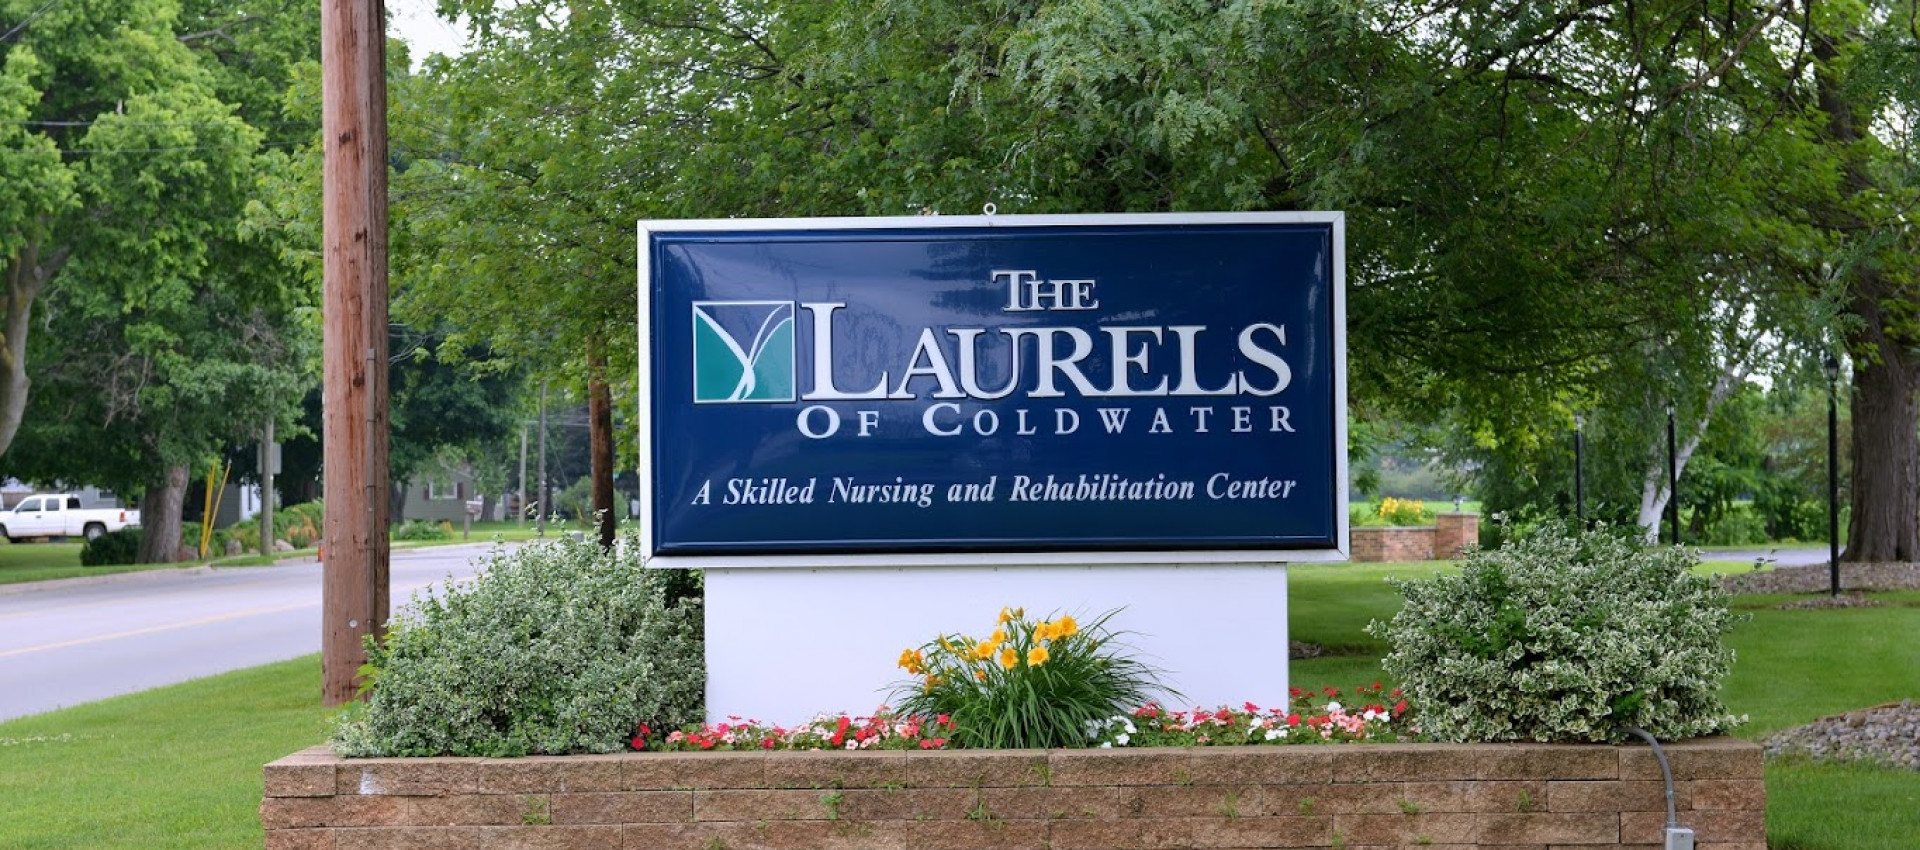 The Laurels of Coldwater